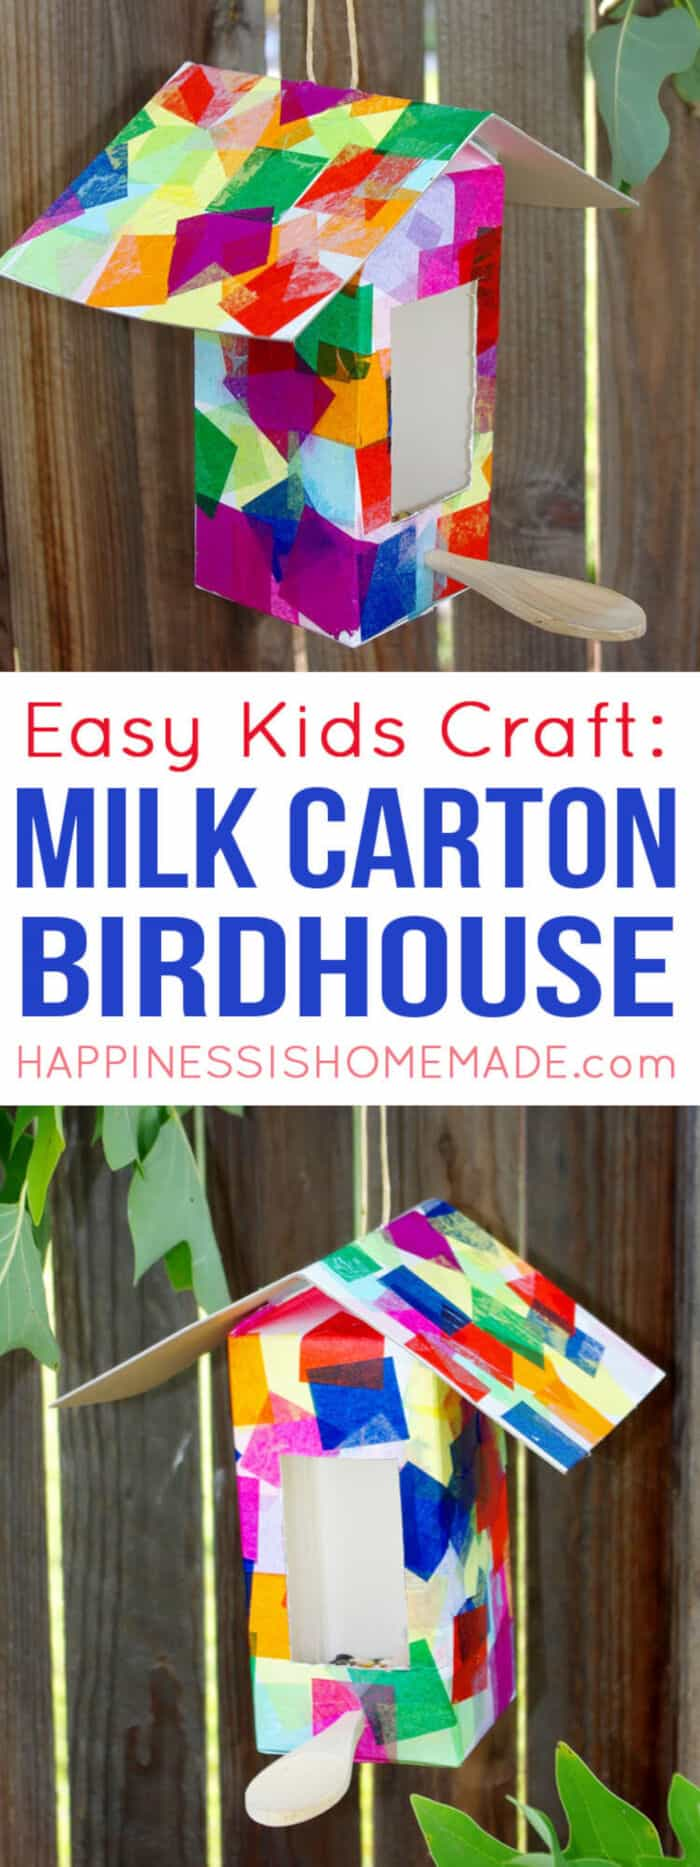 Milk Carton Birdhouse by Happiness Is Homemade